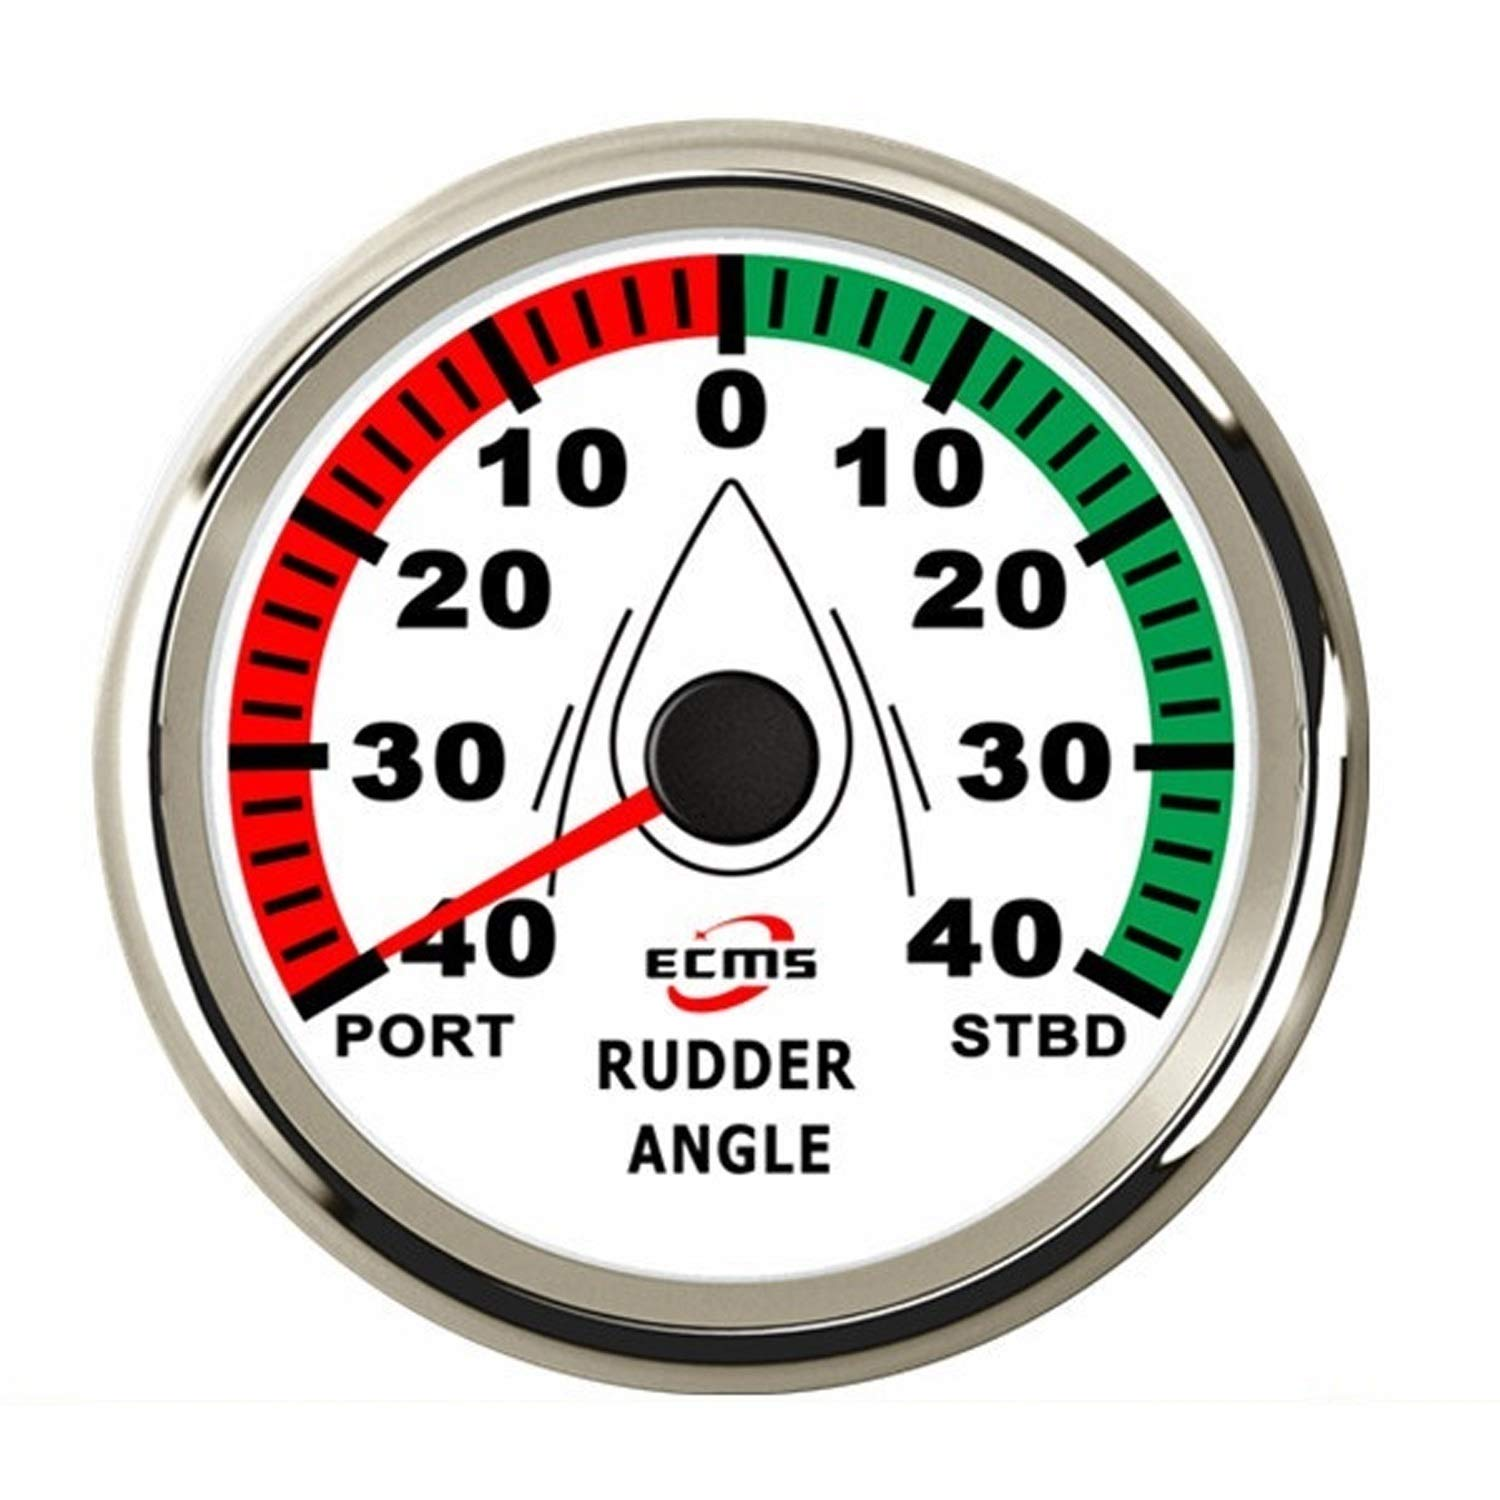 Low Power Consumption Guaranteed Rudder Angle Gauge Indicator 0-190ohm with Matching Sensor with Backlight 85mm 3-3/8 Inches 12V/24V, Waterproof, Lightning-Proof by JUNJIAGAO-gauge